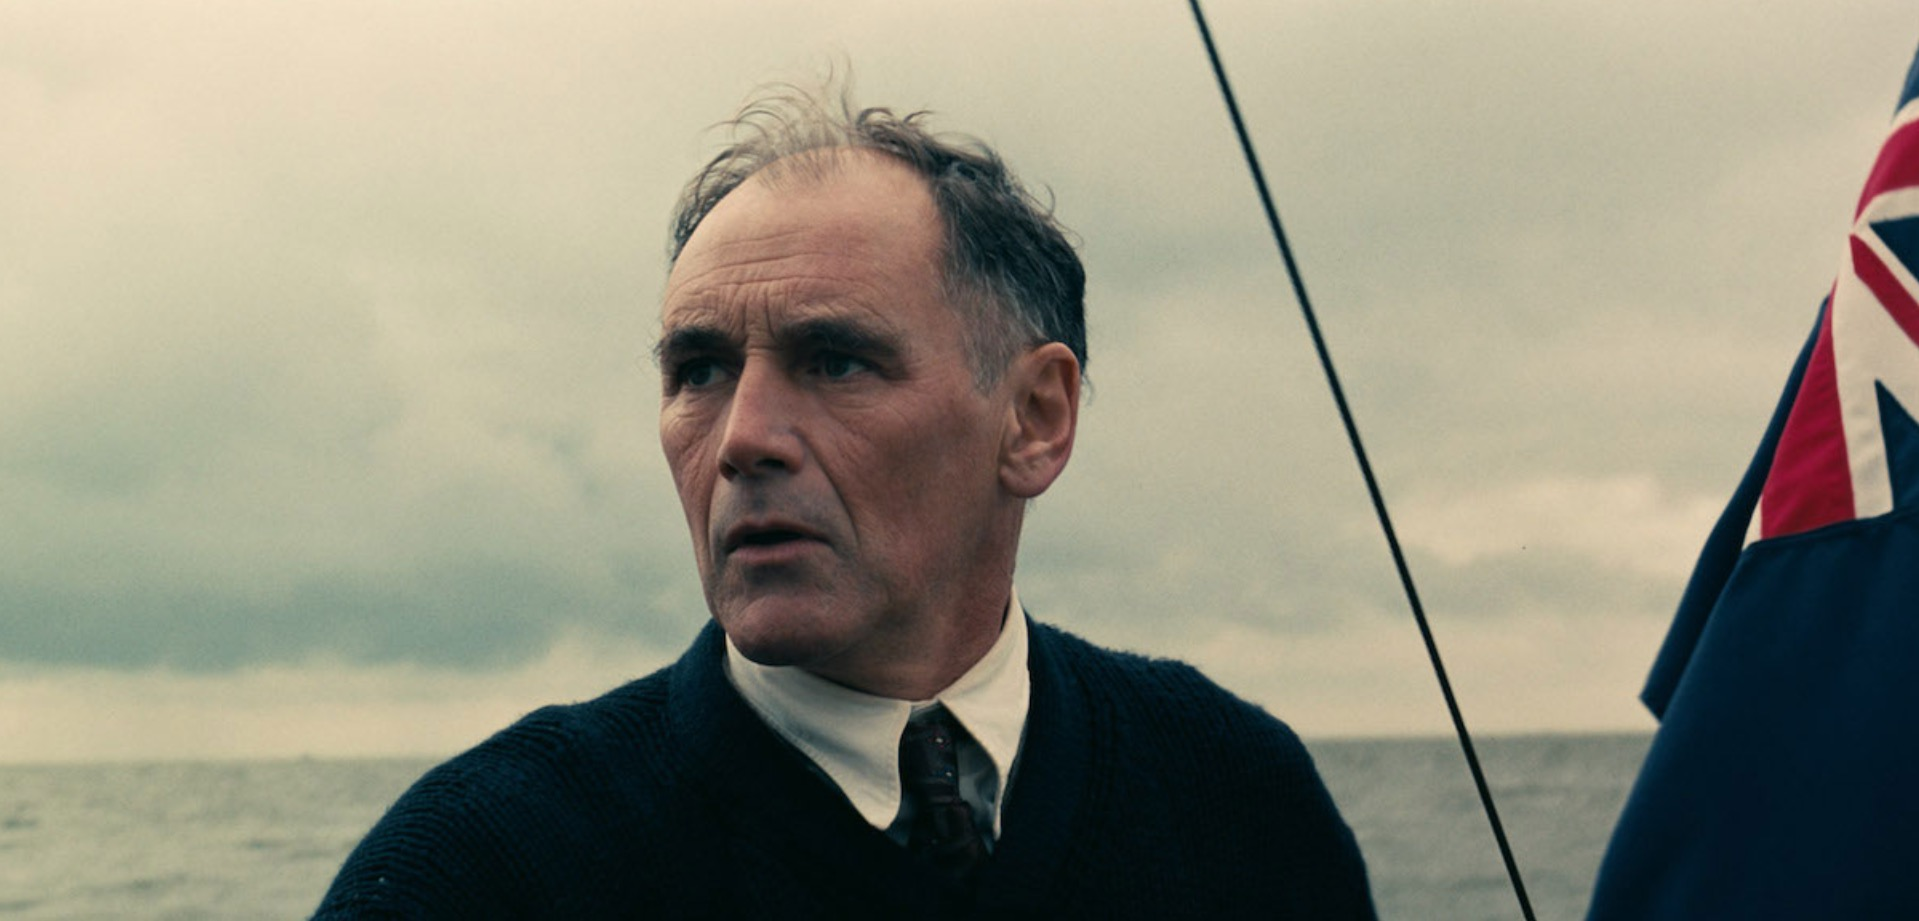 Mark Rylance in Dunkirk